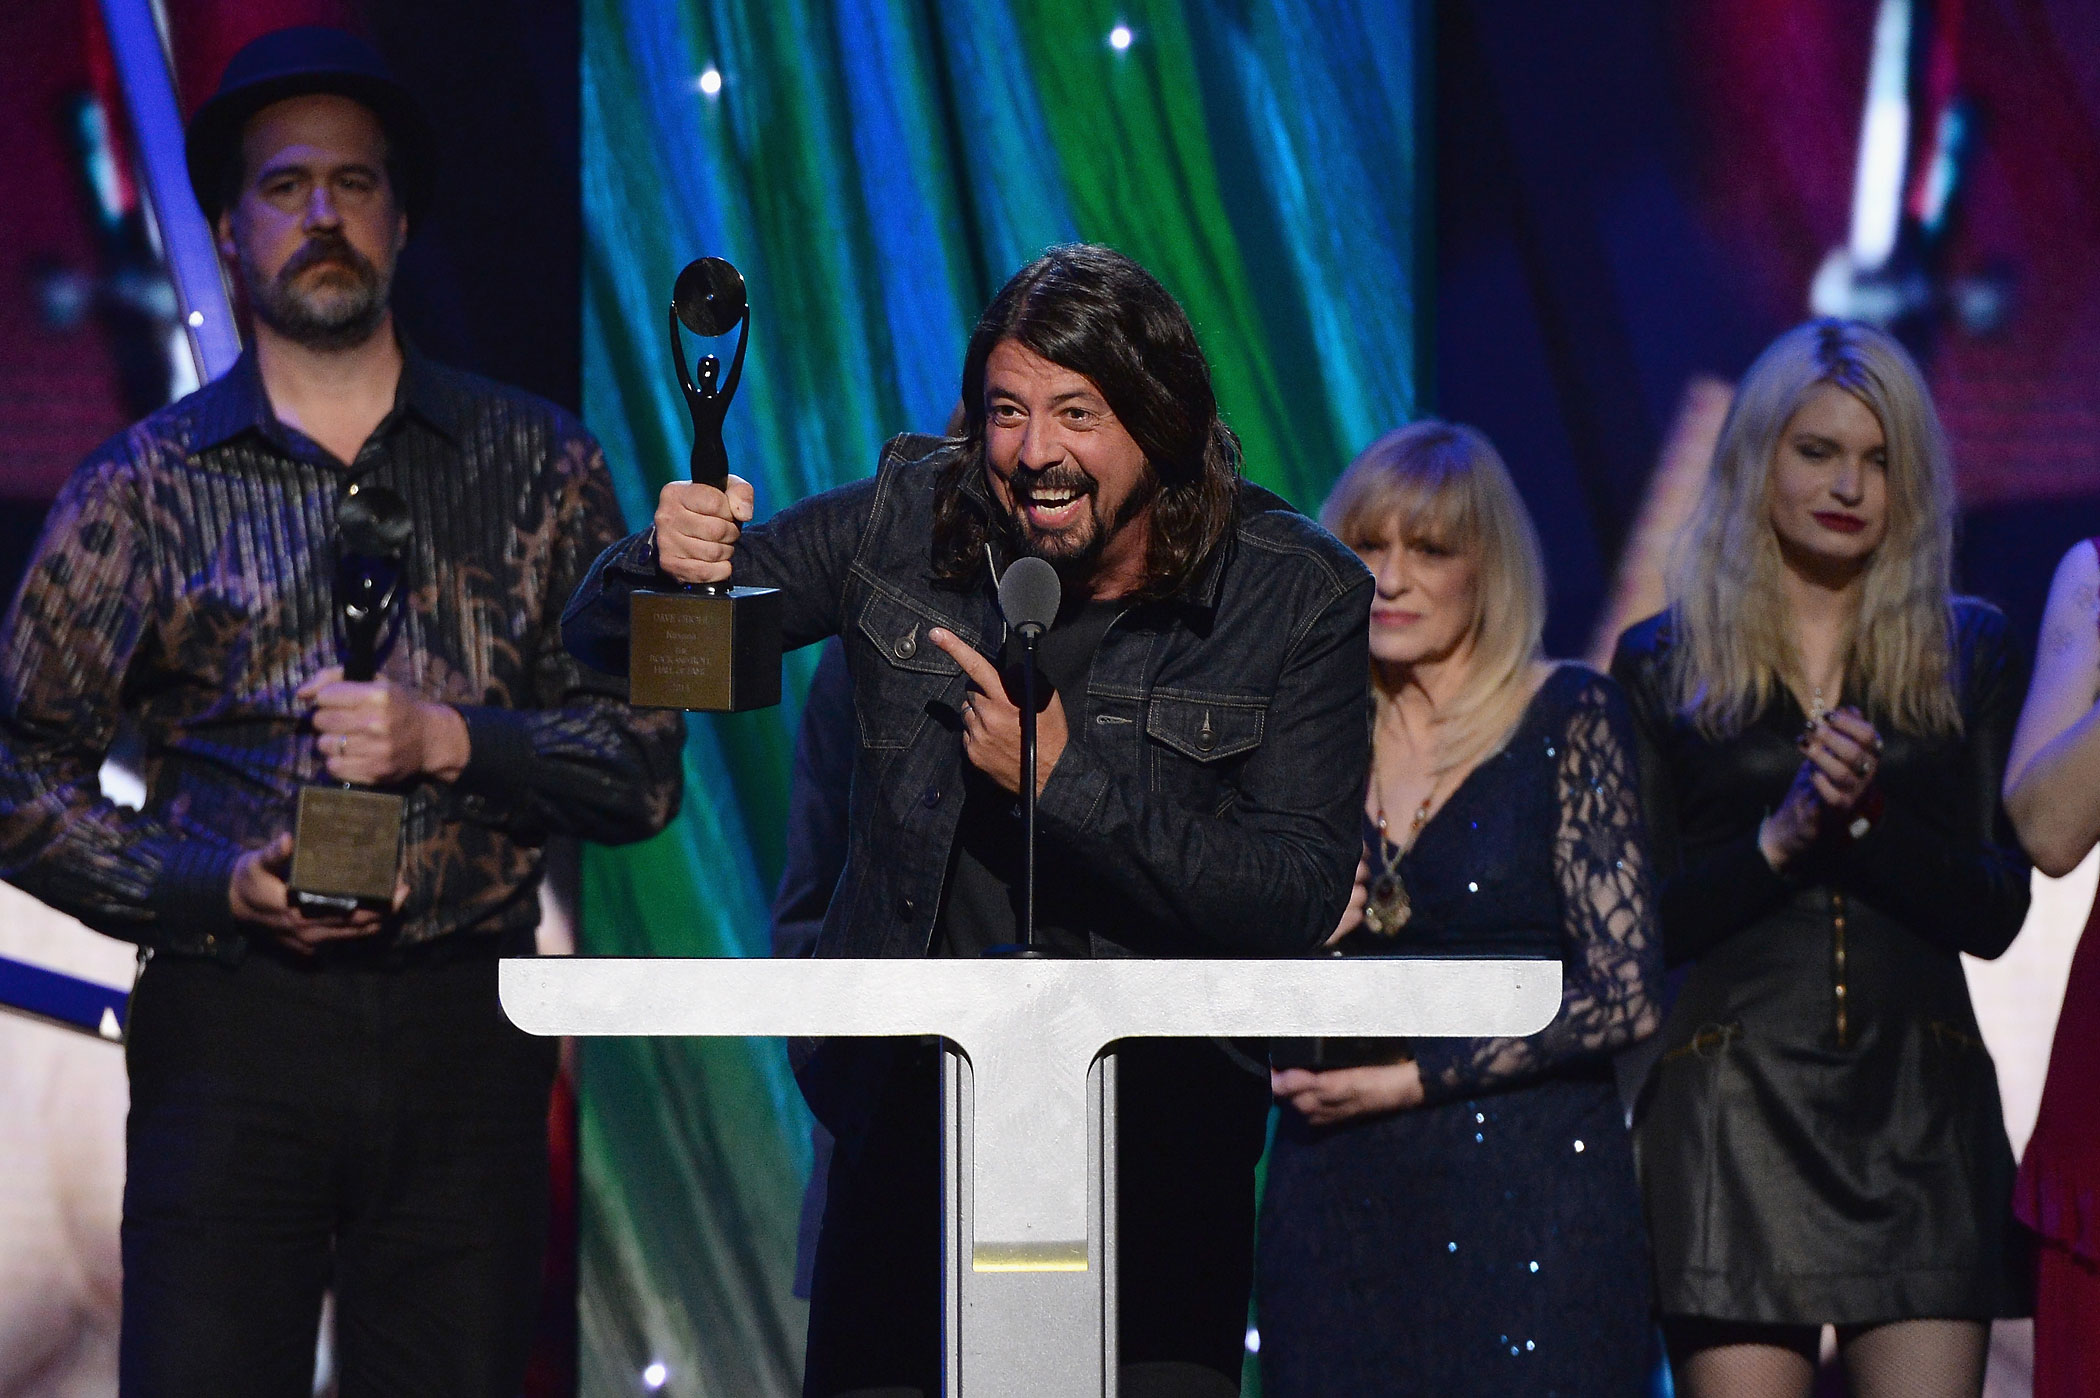 Inductee Dave Grohl speaks onstage at the 29th Annual Rock And Roll Hall Of Fame Induction Ceremony at Barclays Center of Brooklyn on April 10, 2014 in New York City.